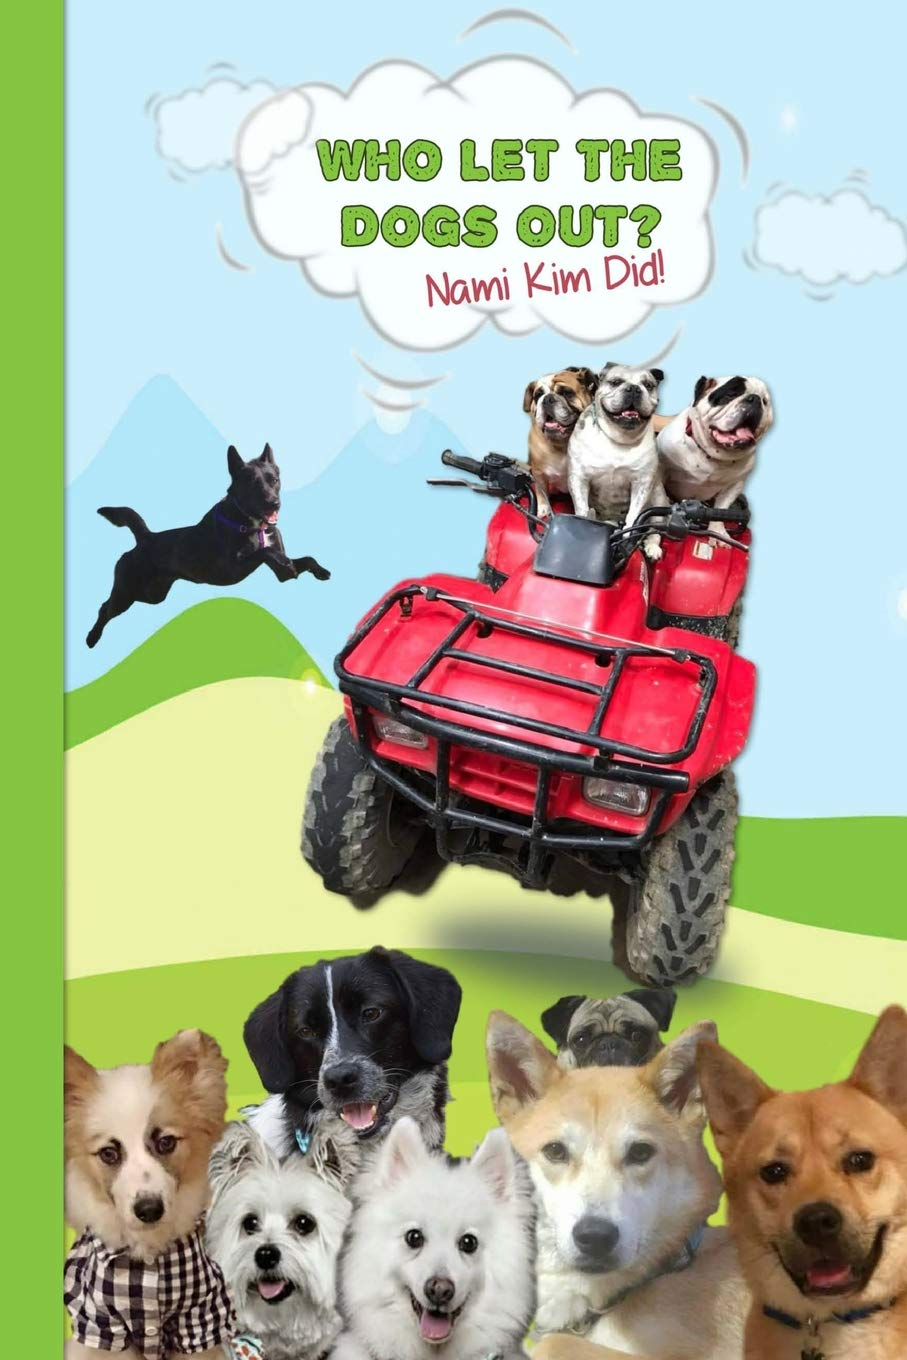 9641e09dc83 Amazon.com  Who Let The Dogs Out  ... Nami Kim Did!  Green Hills - A ...